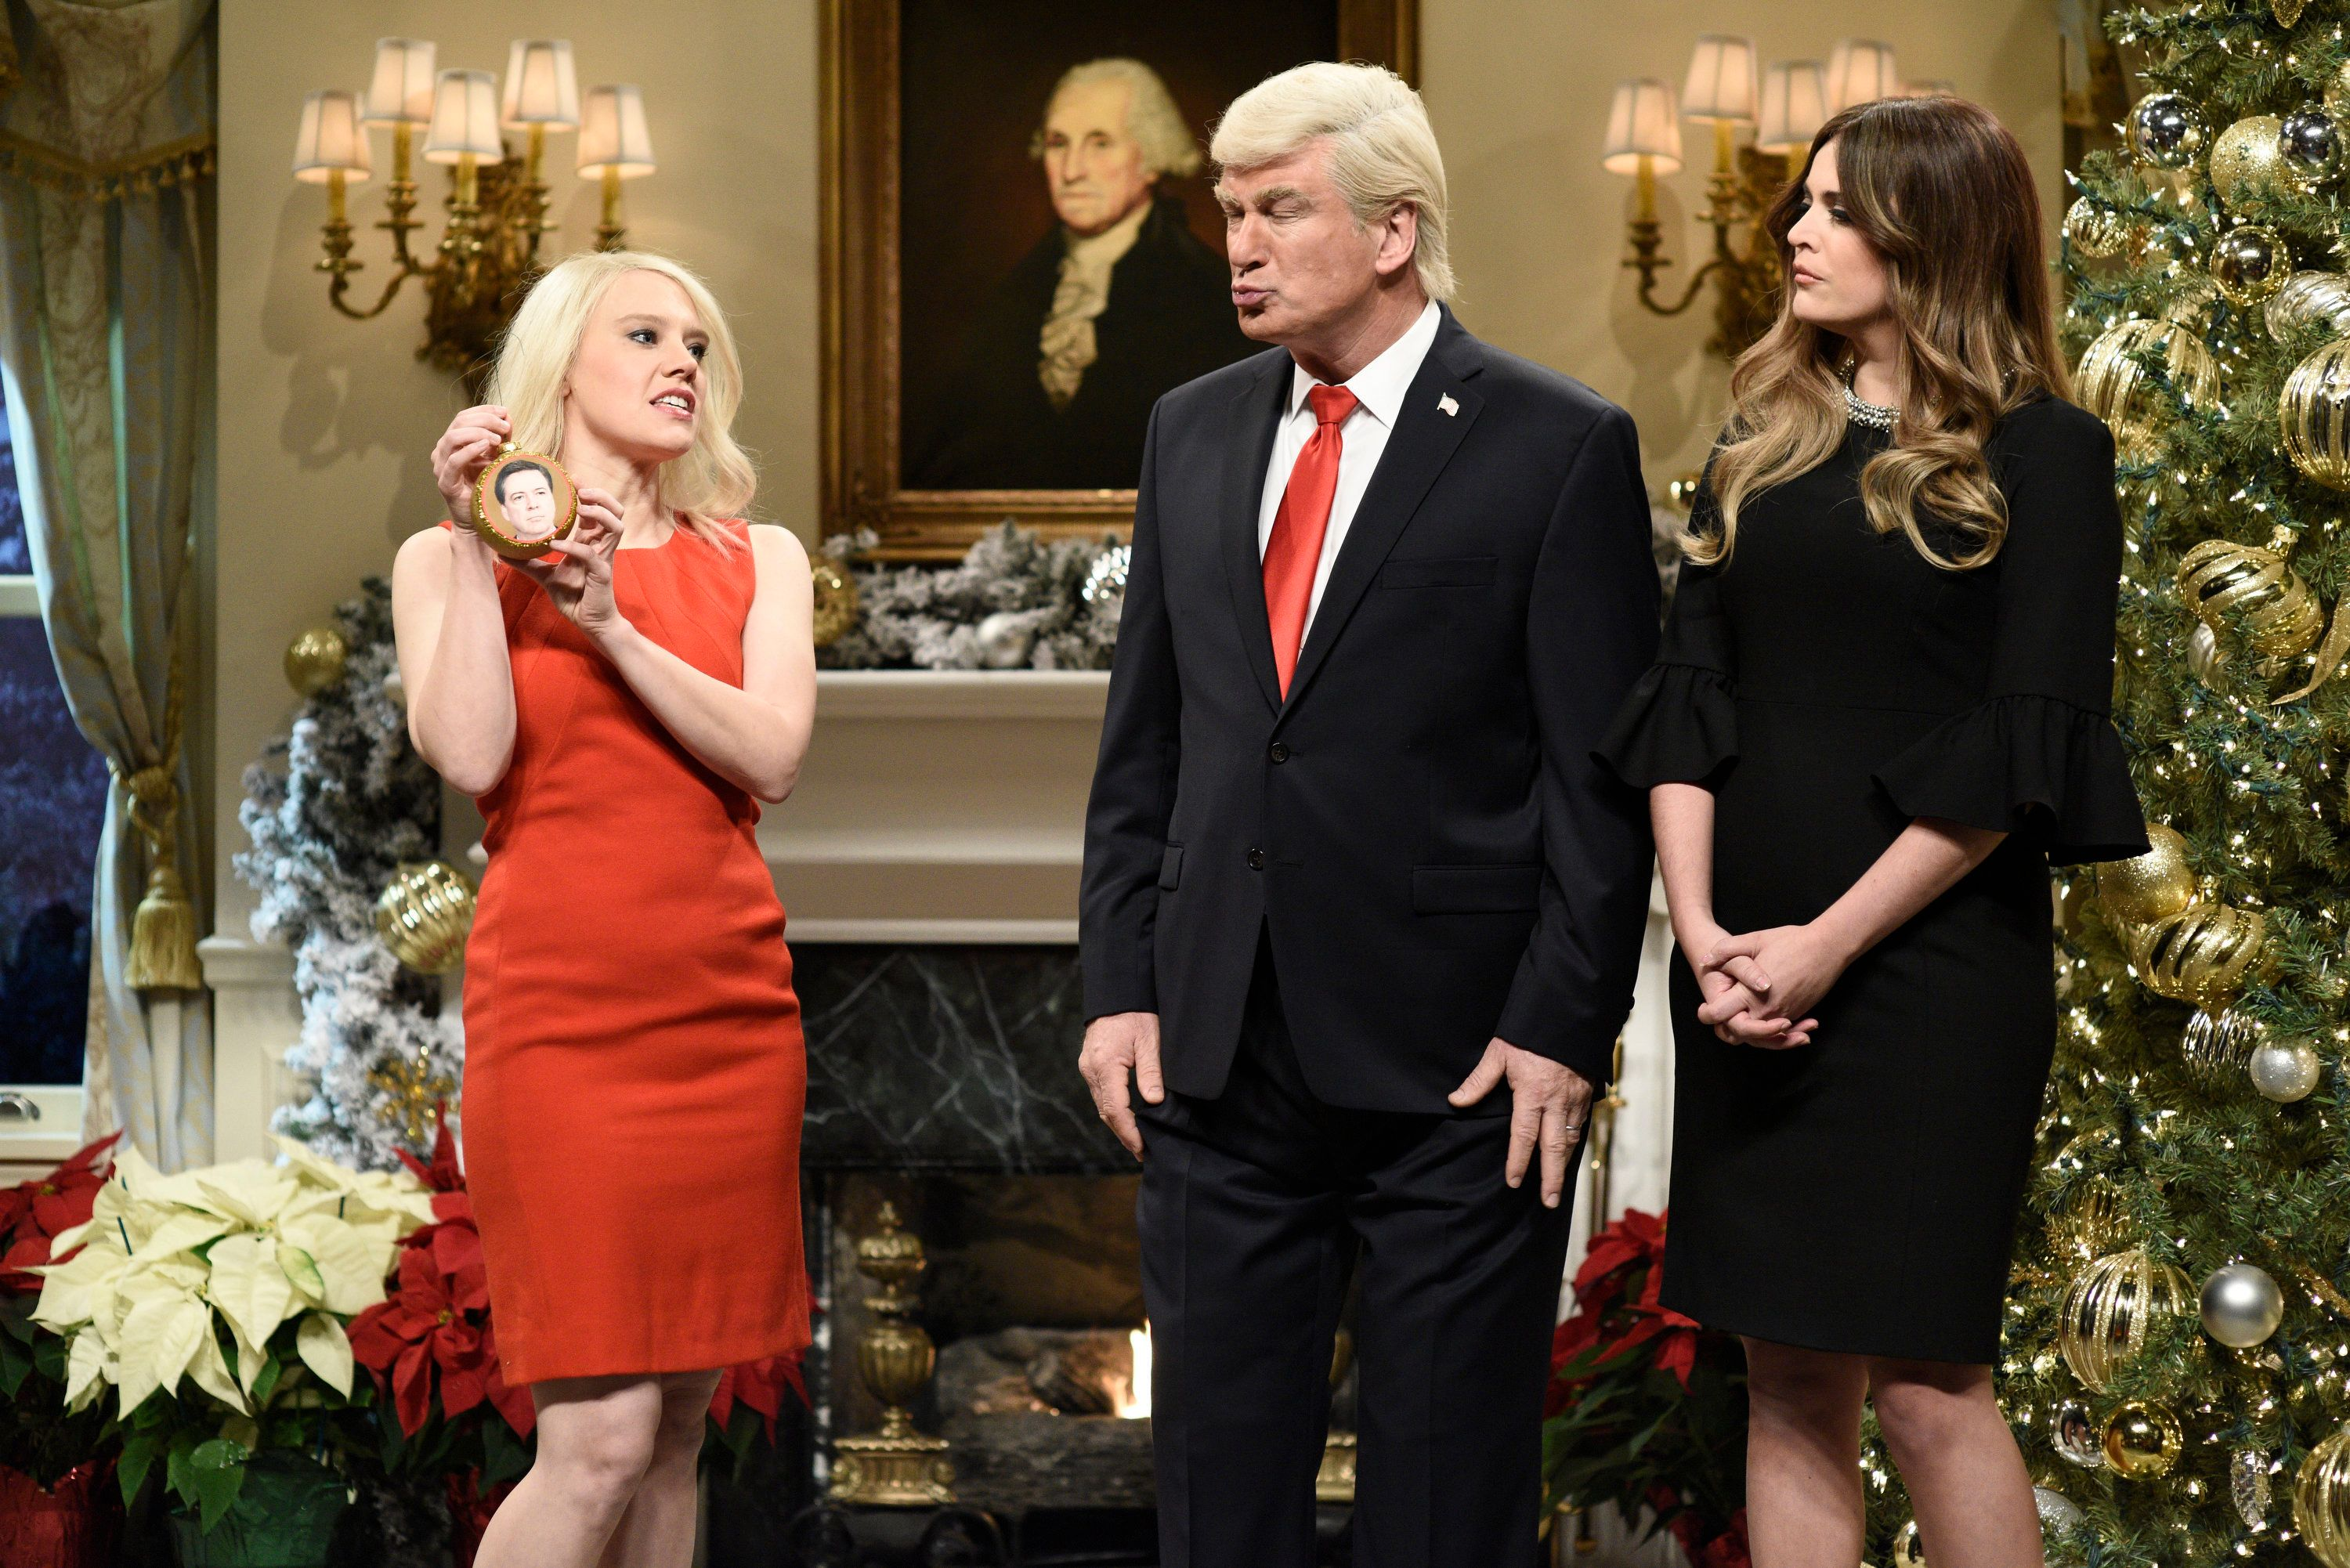 SATURDAY NIGHT LIVE -- Episode 1734 -- Pictured: (l-r) Kate McKinnon as Counselor to the President Kellyanne Conway, Alec Baldwin as President Donald J. Trump, Cecily Strong as First Lady Melania Trump during 'White House Tree Trimming Cold Open' in Studio 8H on Saturday, December 16, 2017 -- (Photo by: Will Heath/NBC/NBCU Photo Bank via Getty Images)